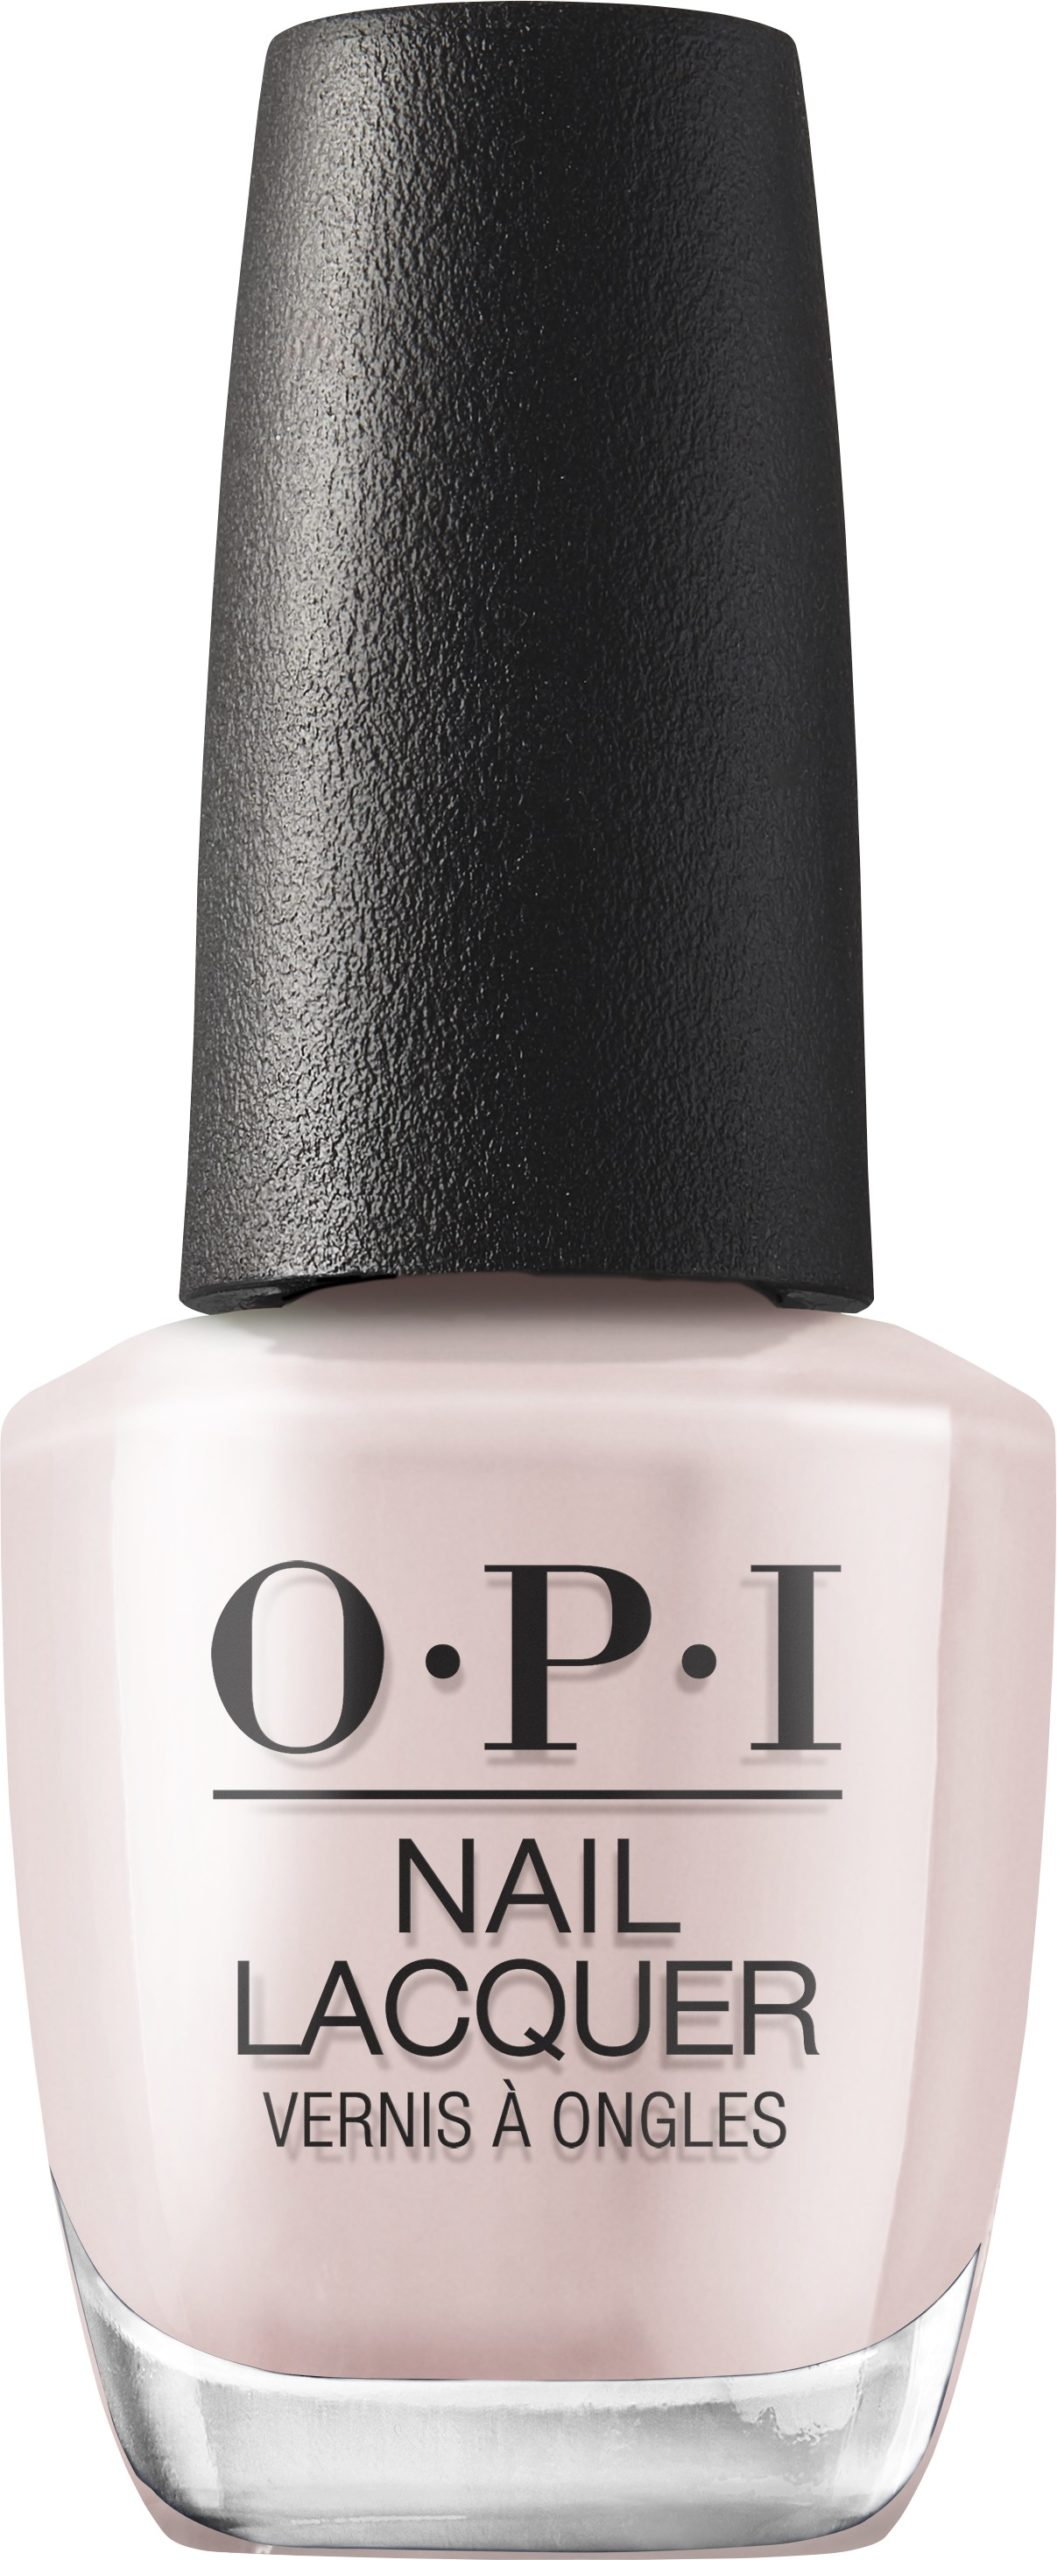 My Celebrity Life – OPI Movie Buff Nail Lacquer